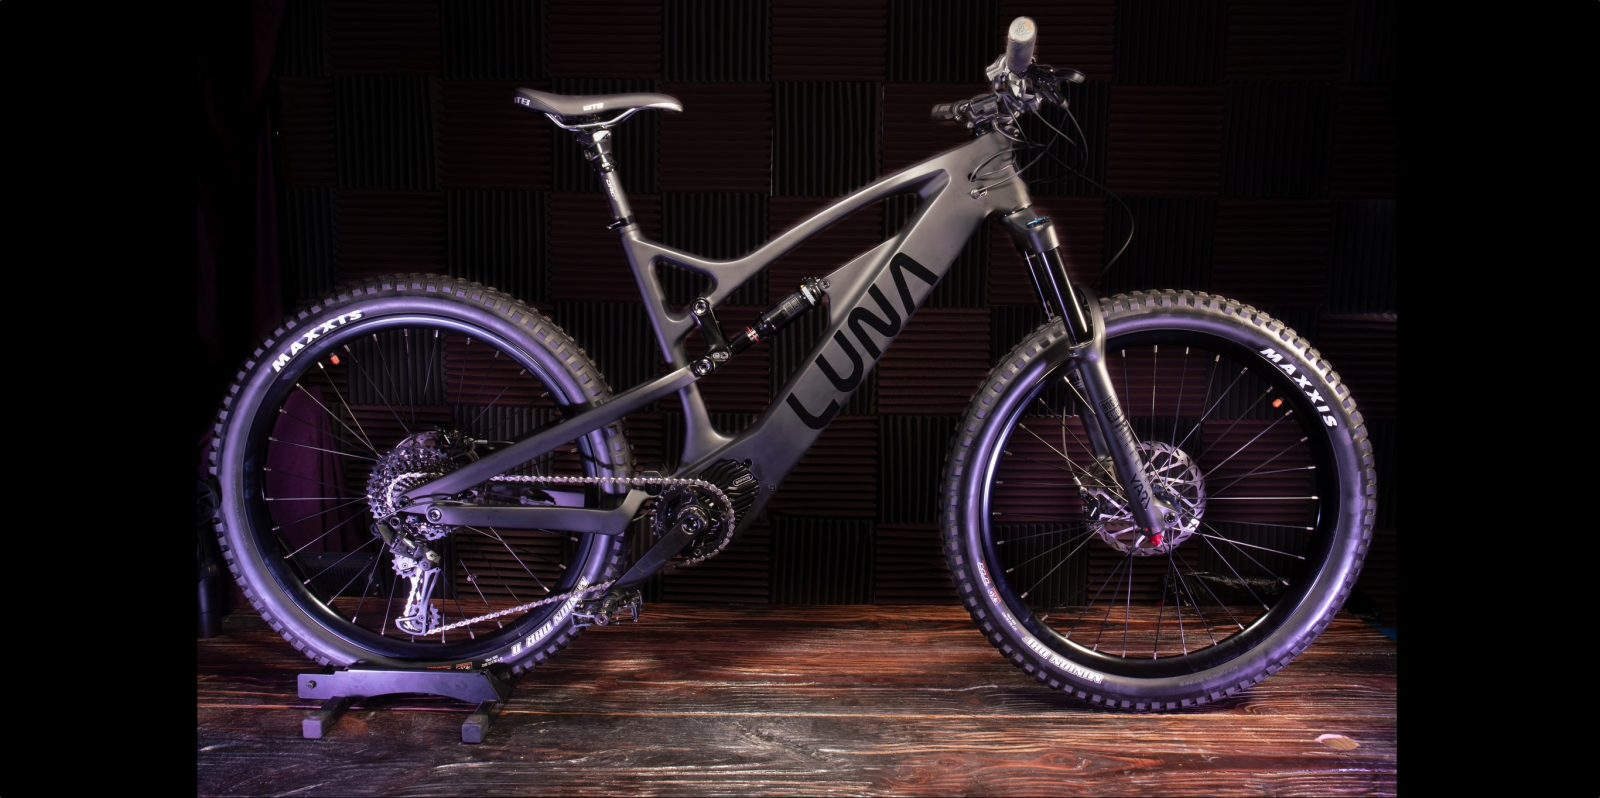 a32cb38efd7 Luna Cycle has just released their latest in-house electric bicycle  development project. This time, the California-based company is rolling out  the X-1 ...